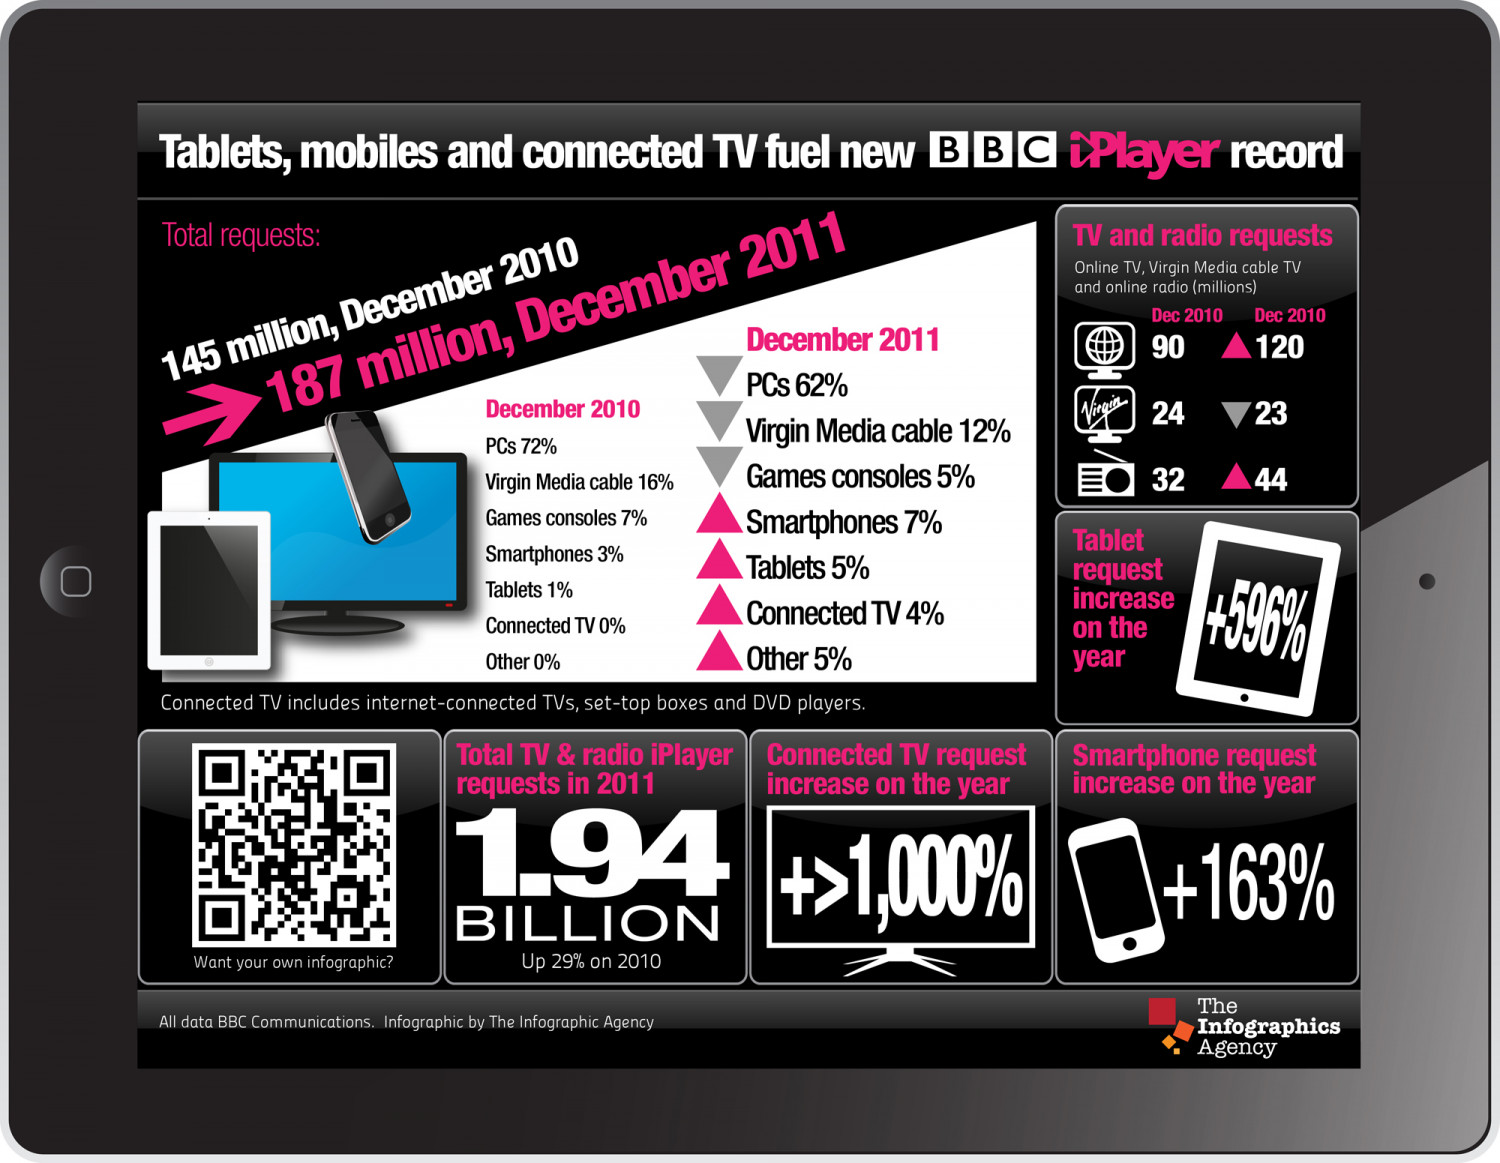 Tablets, mobiles and connected TV fuel new BBC iPlayer record Infographic